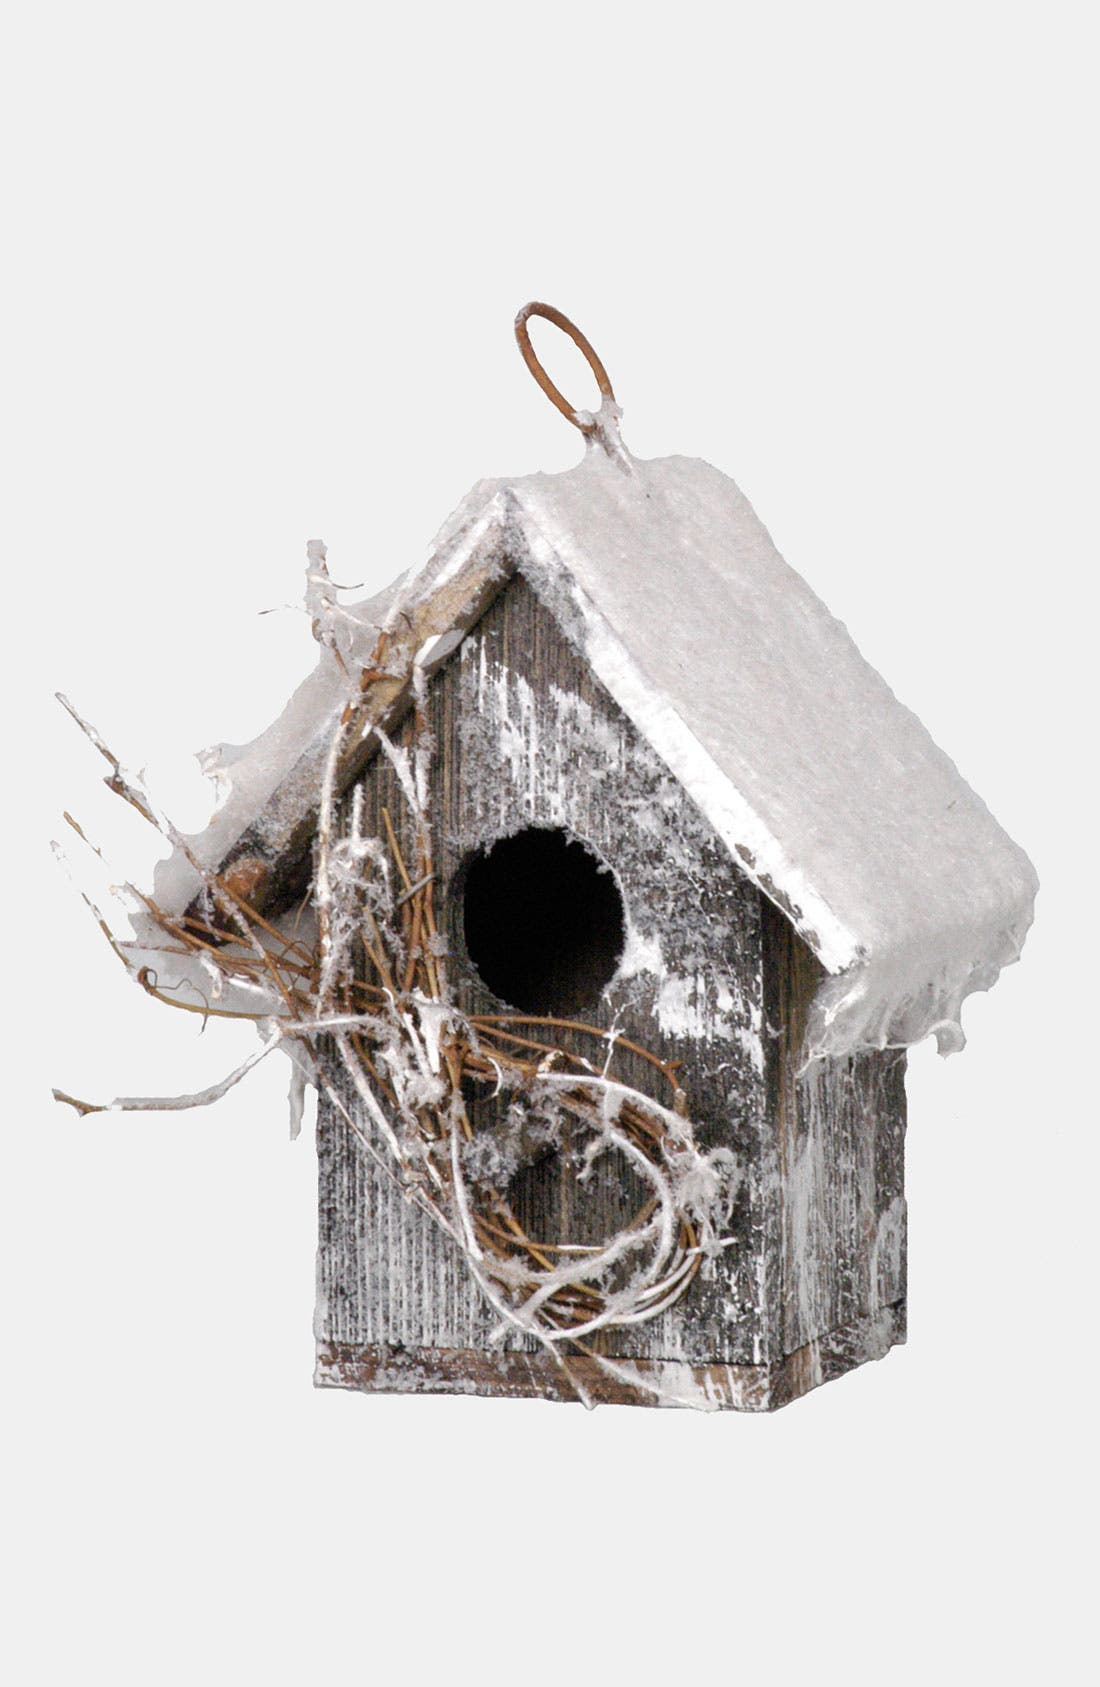 Alternate Image 1 Selected - Fantastic Craft 'Snow Birdhouse - Small' Decoration